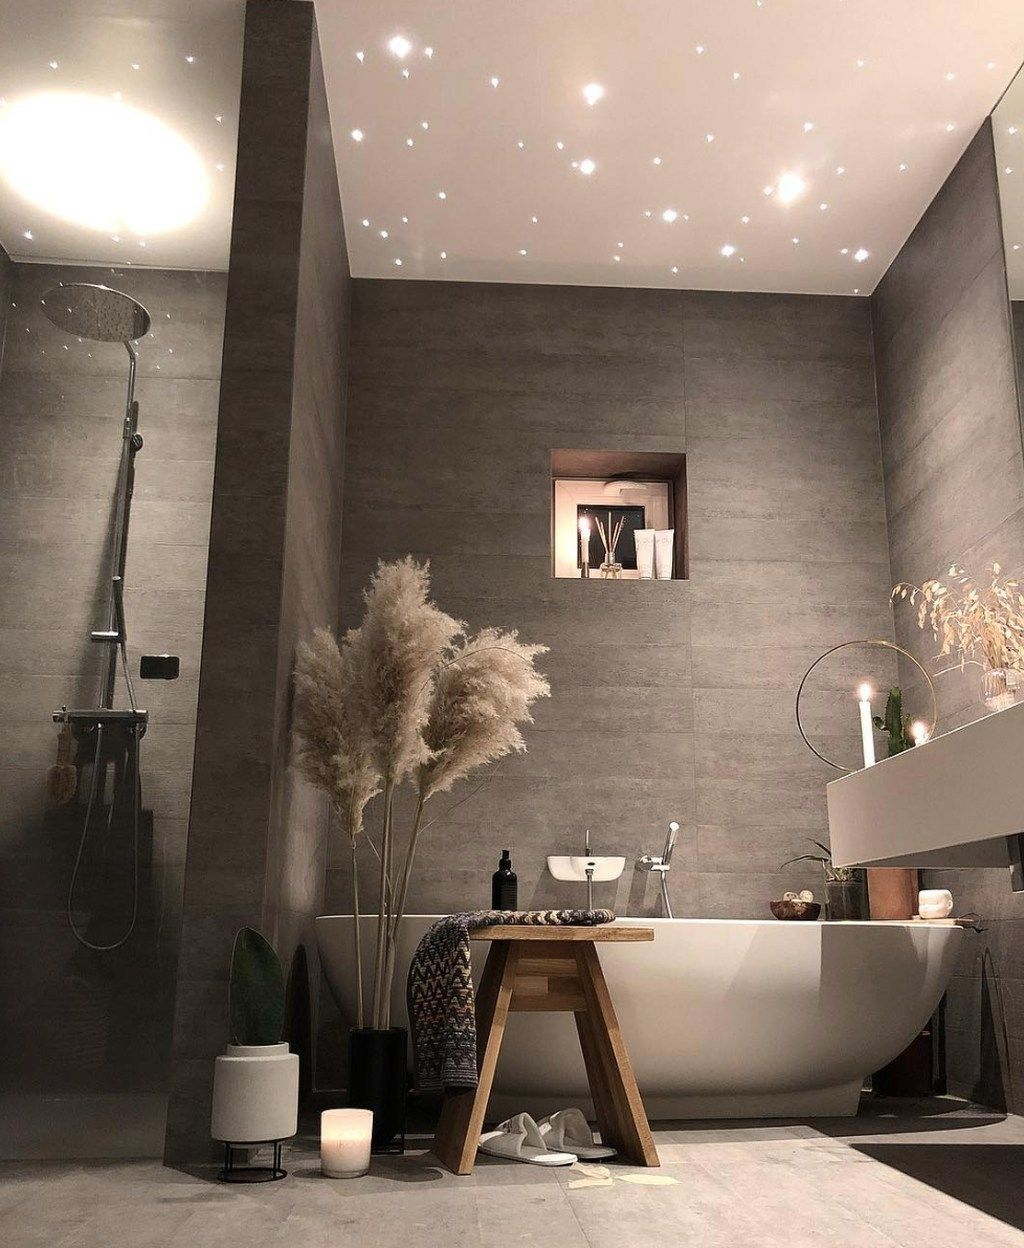 Relaxing Bathroom Decor Ideas For Your Bathroom Look Cool44 Best